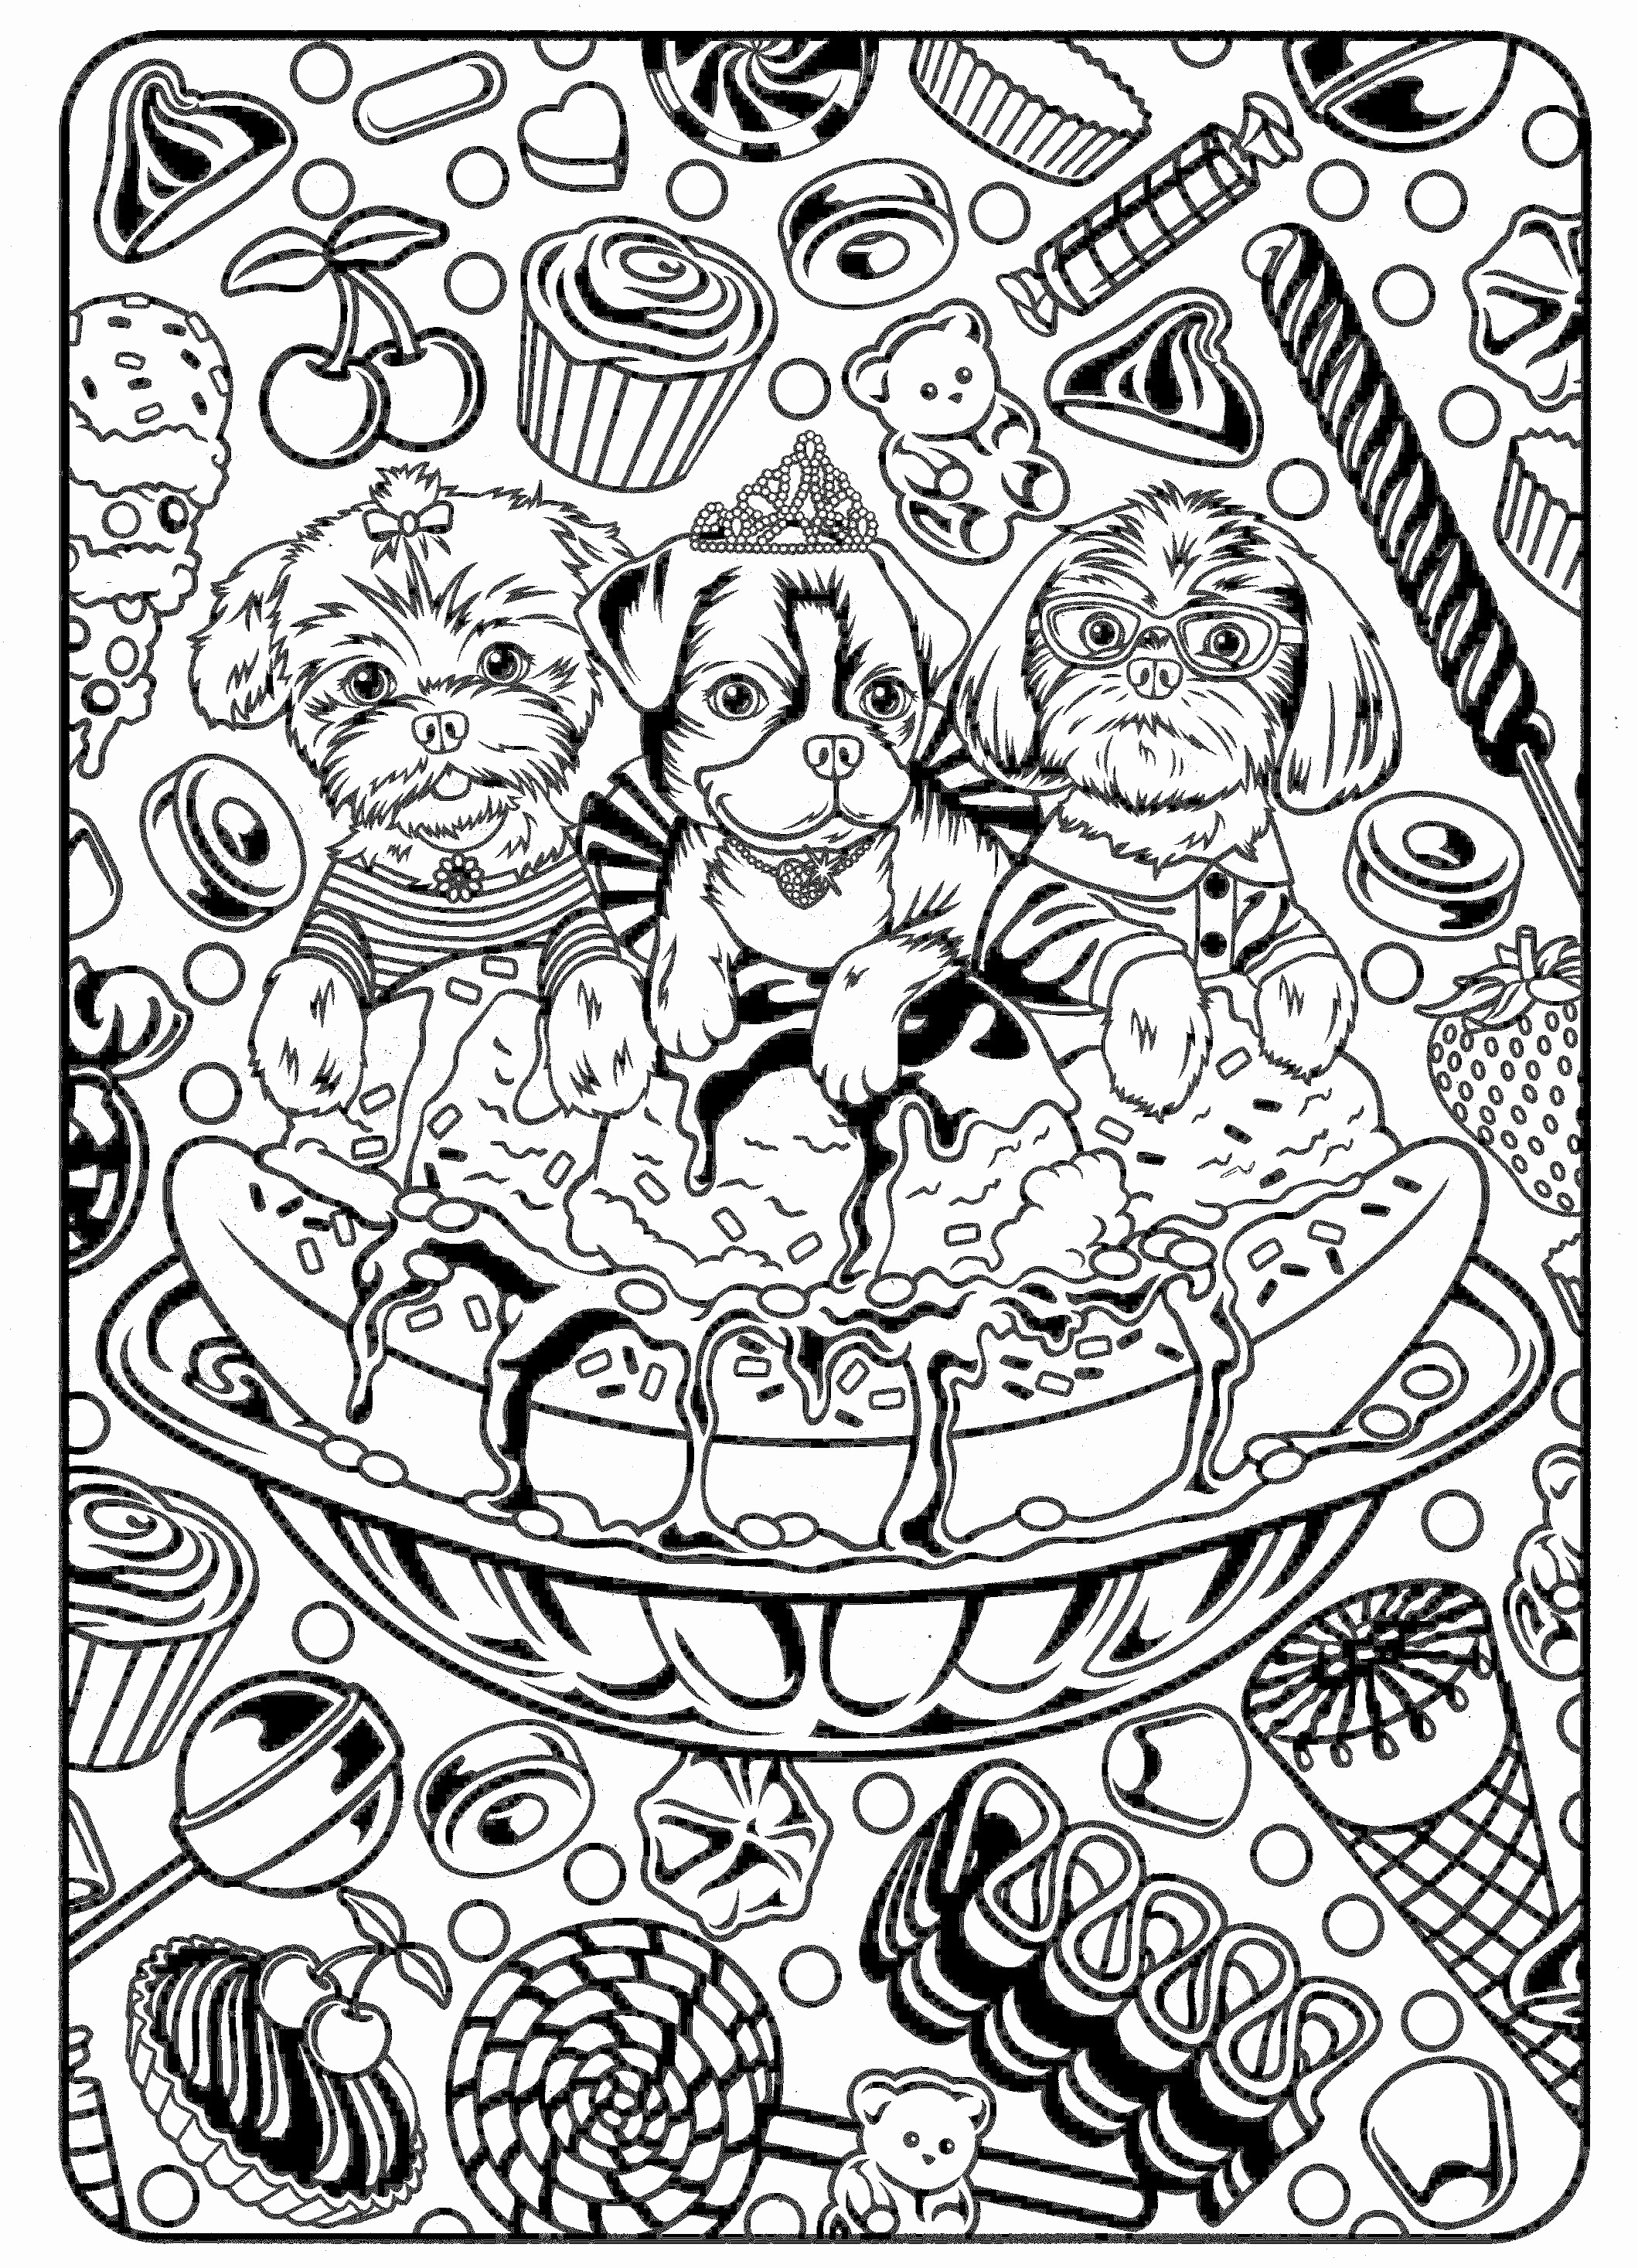 mandalas coloring pages Collection-Art Coloring Pages for Kids Advanced Mandala Coloring Pages Printable 17-d